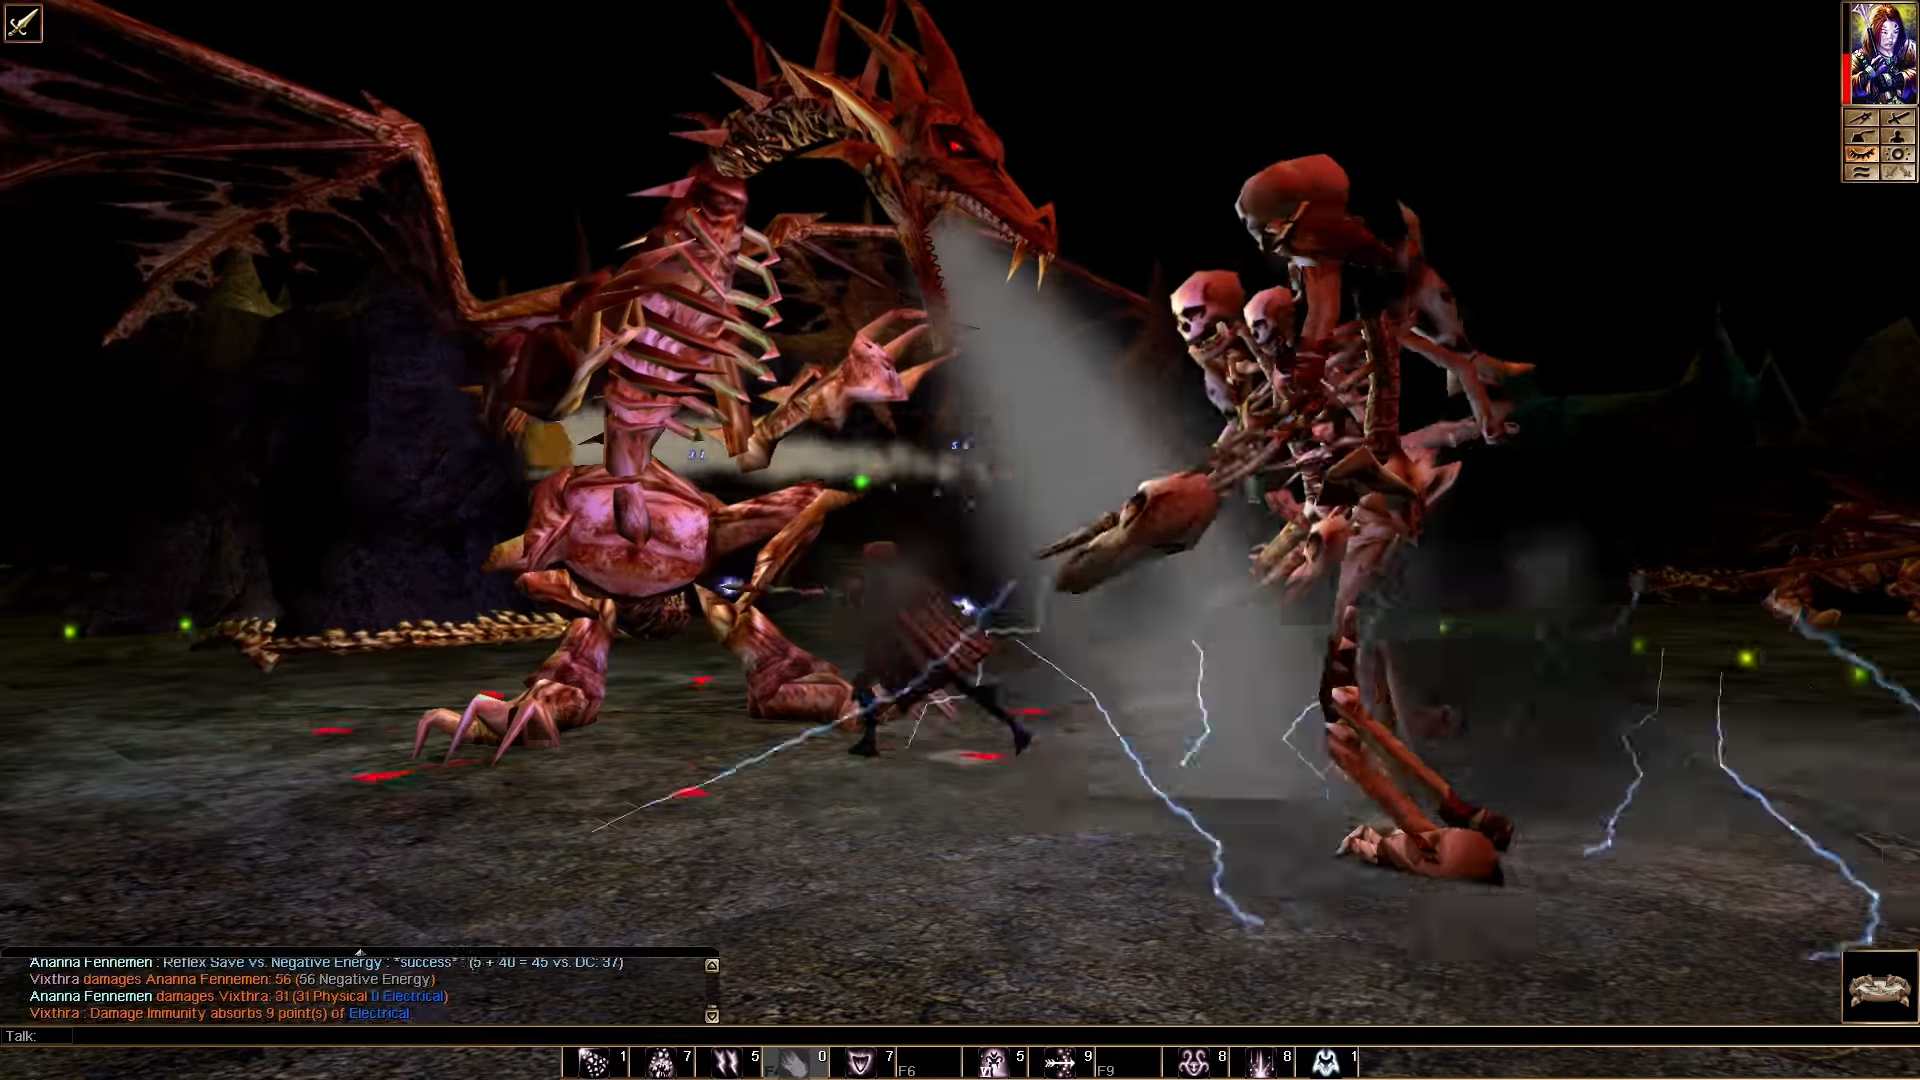 neverwinter-nights-enhanced-edition-gameplay-rpg-screenshot